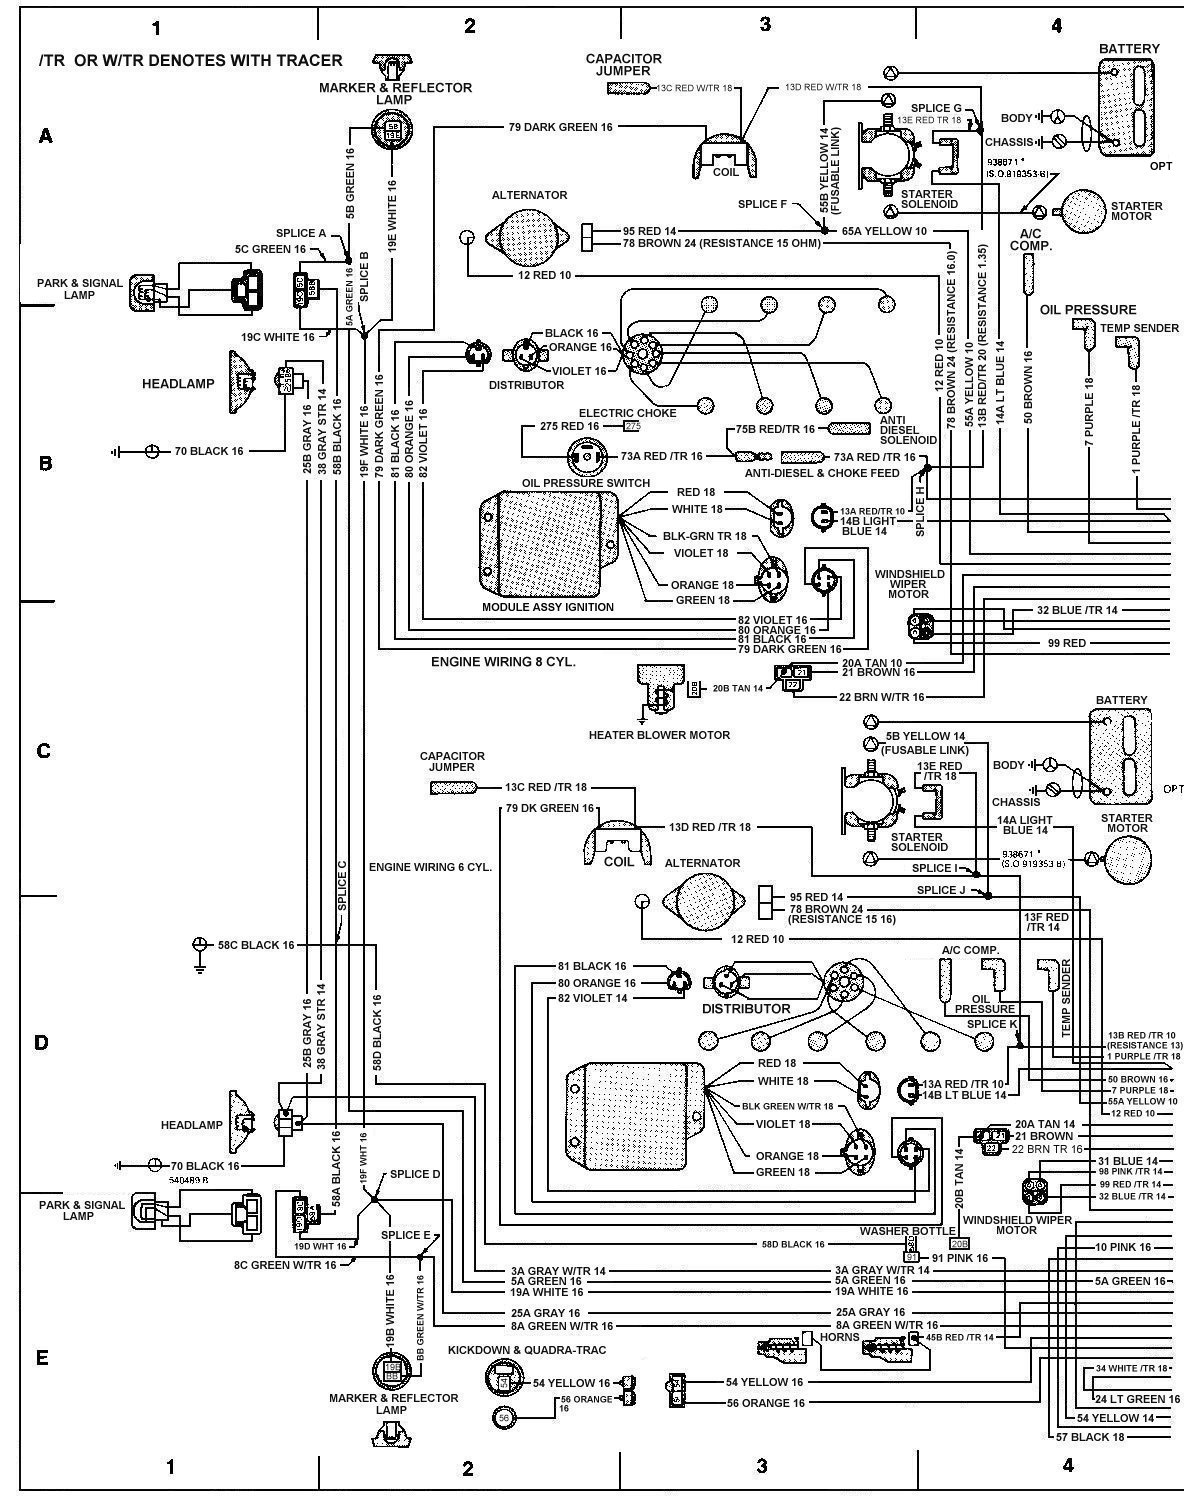 1981 Jeep Cj7 258 Wiring Diagram | Wiring Diagram Database